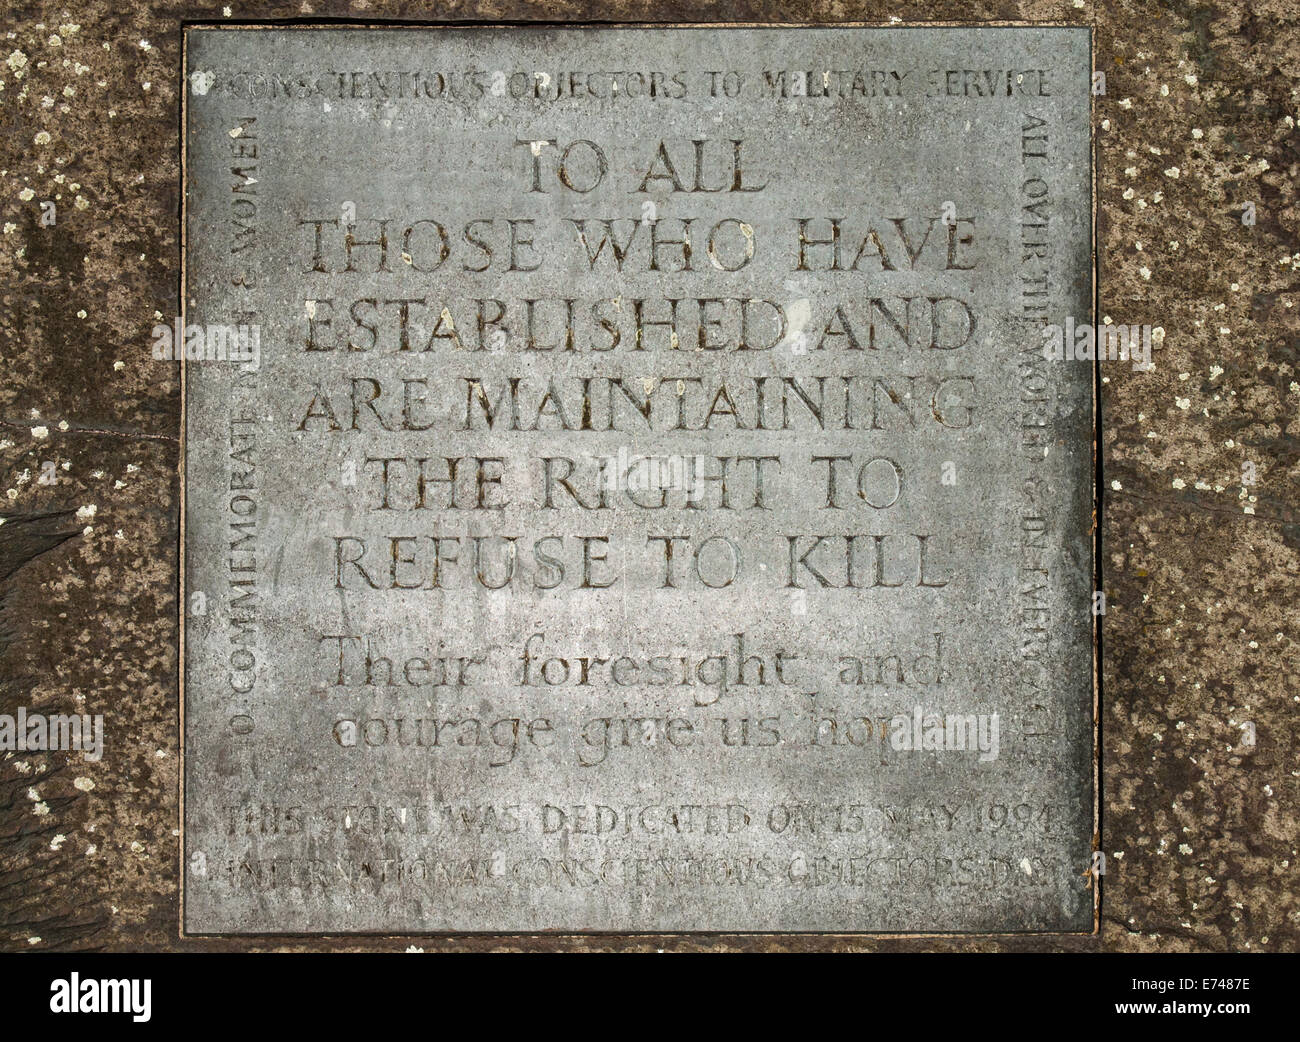 Detail of the Conscientious objector memorial, tavistock square, bloomsbury, camden london - Stock Image